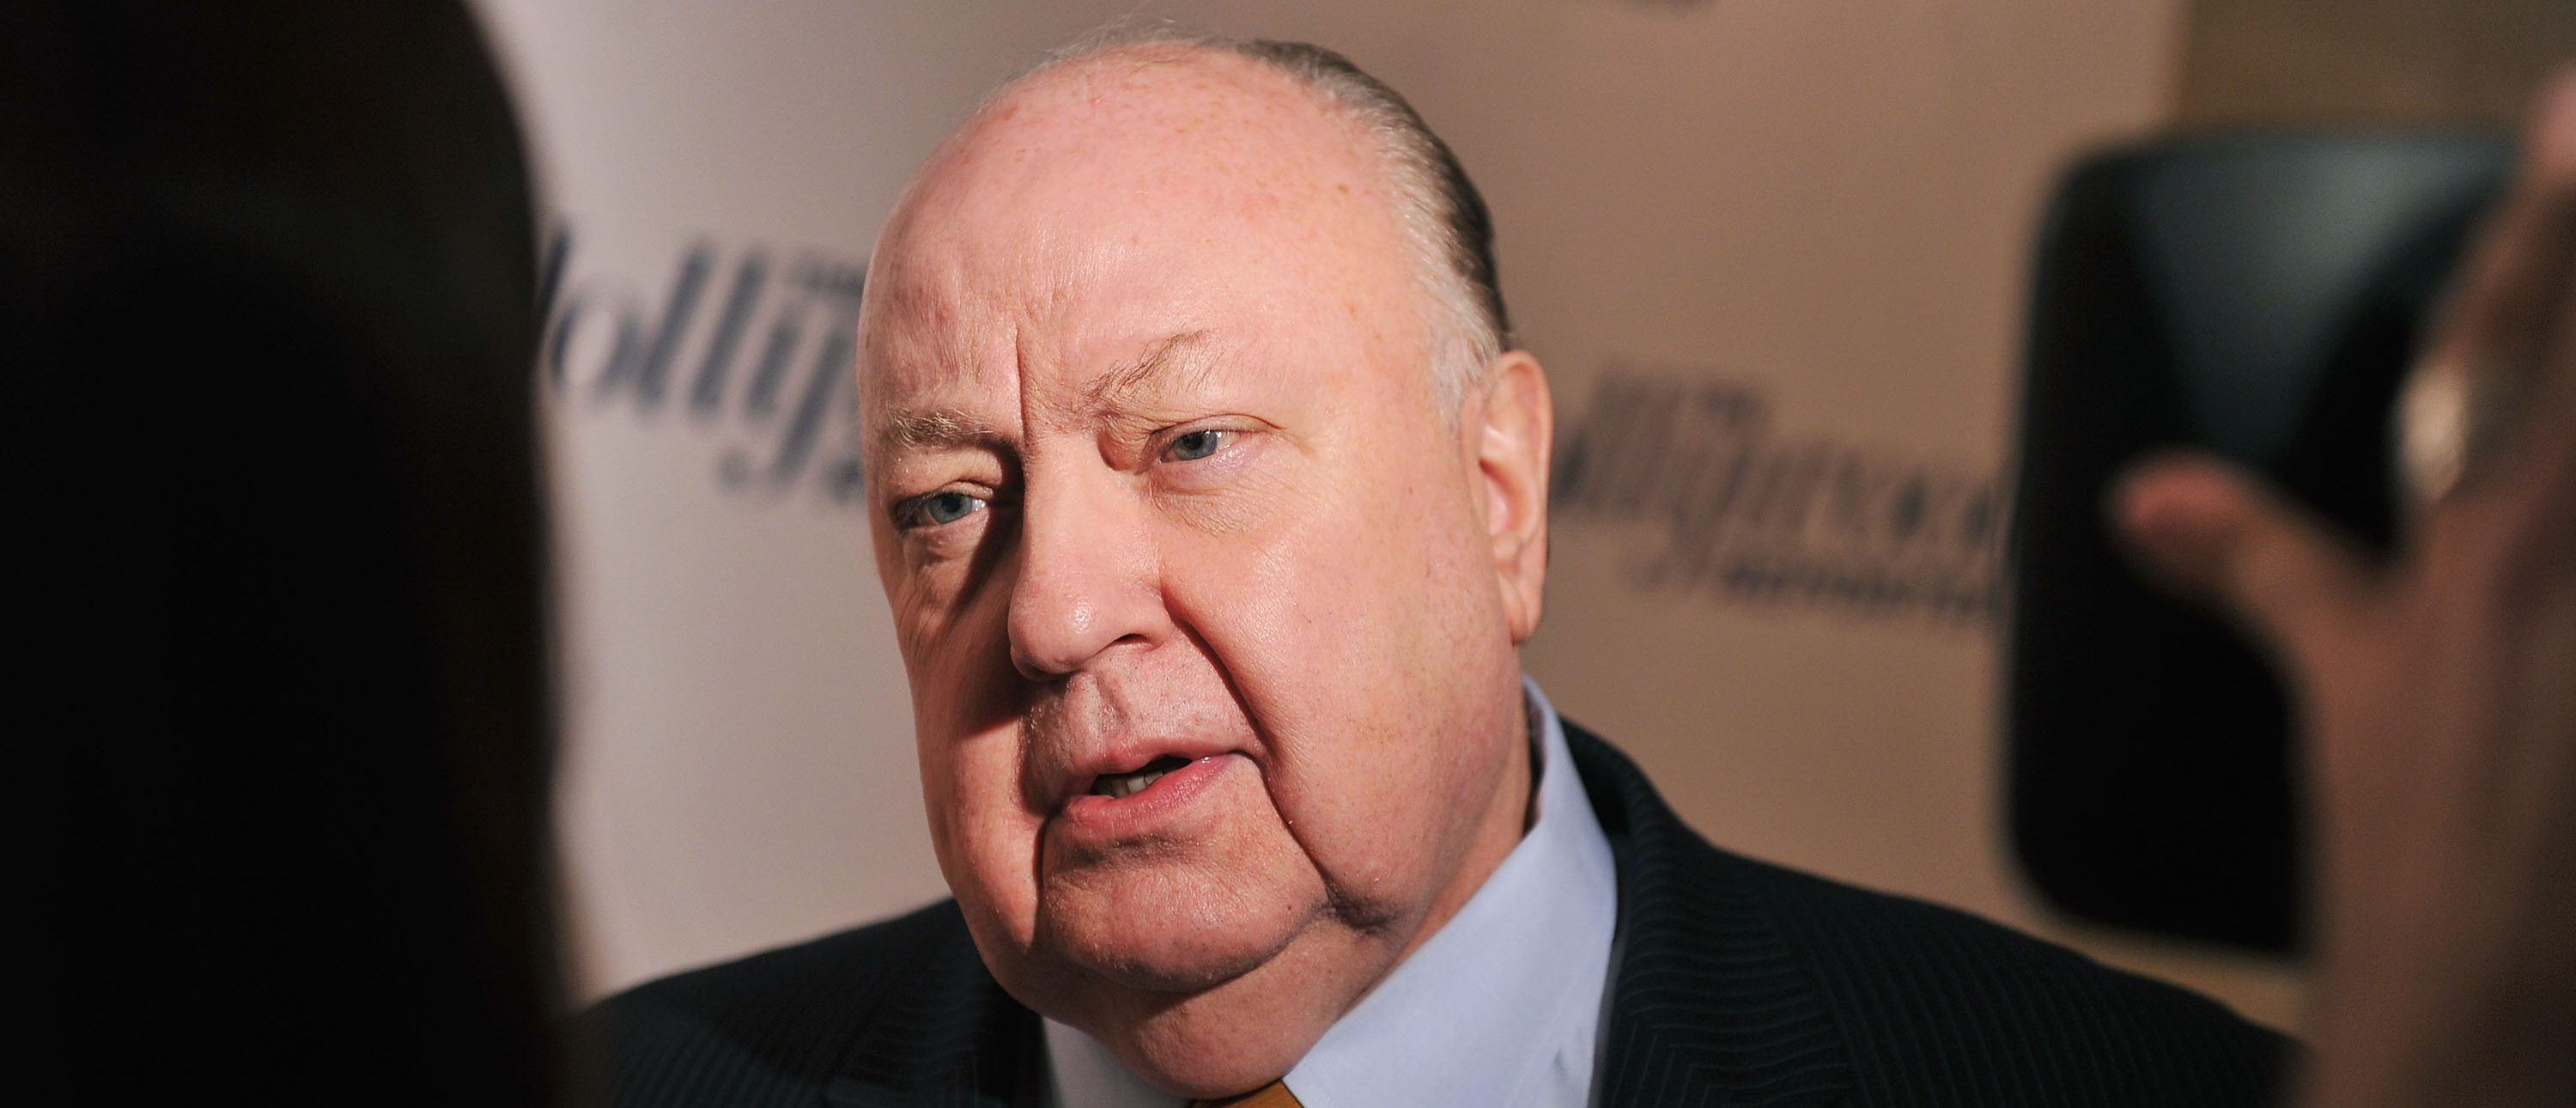 Roger Ailes (Getty Images)